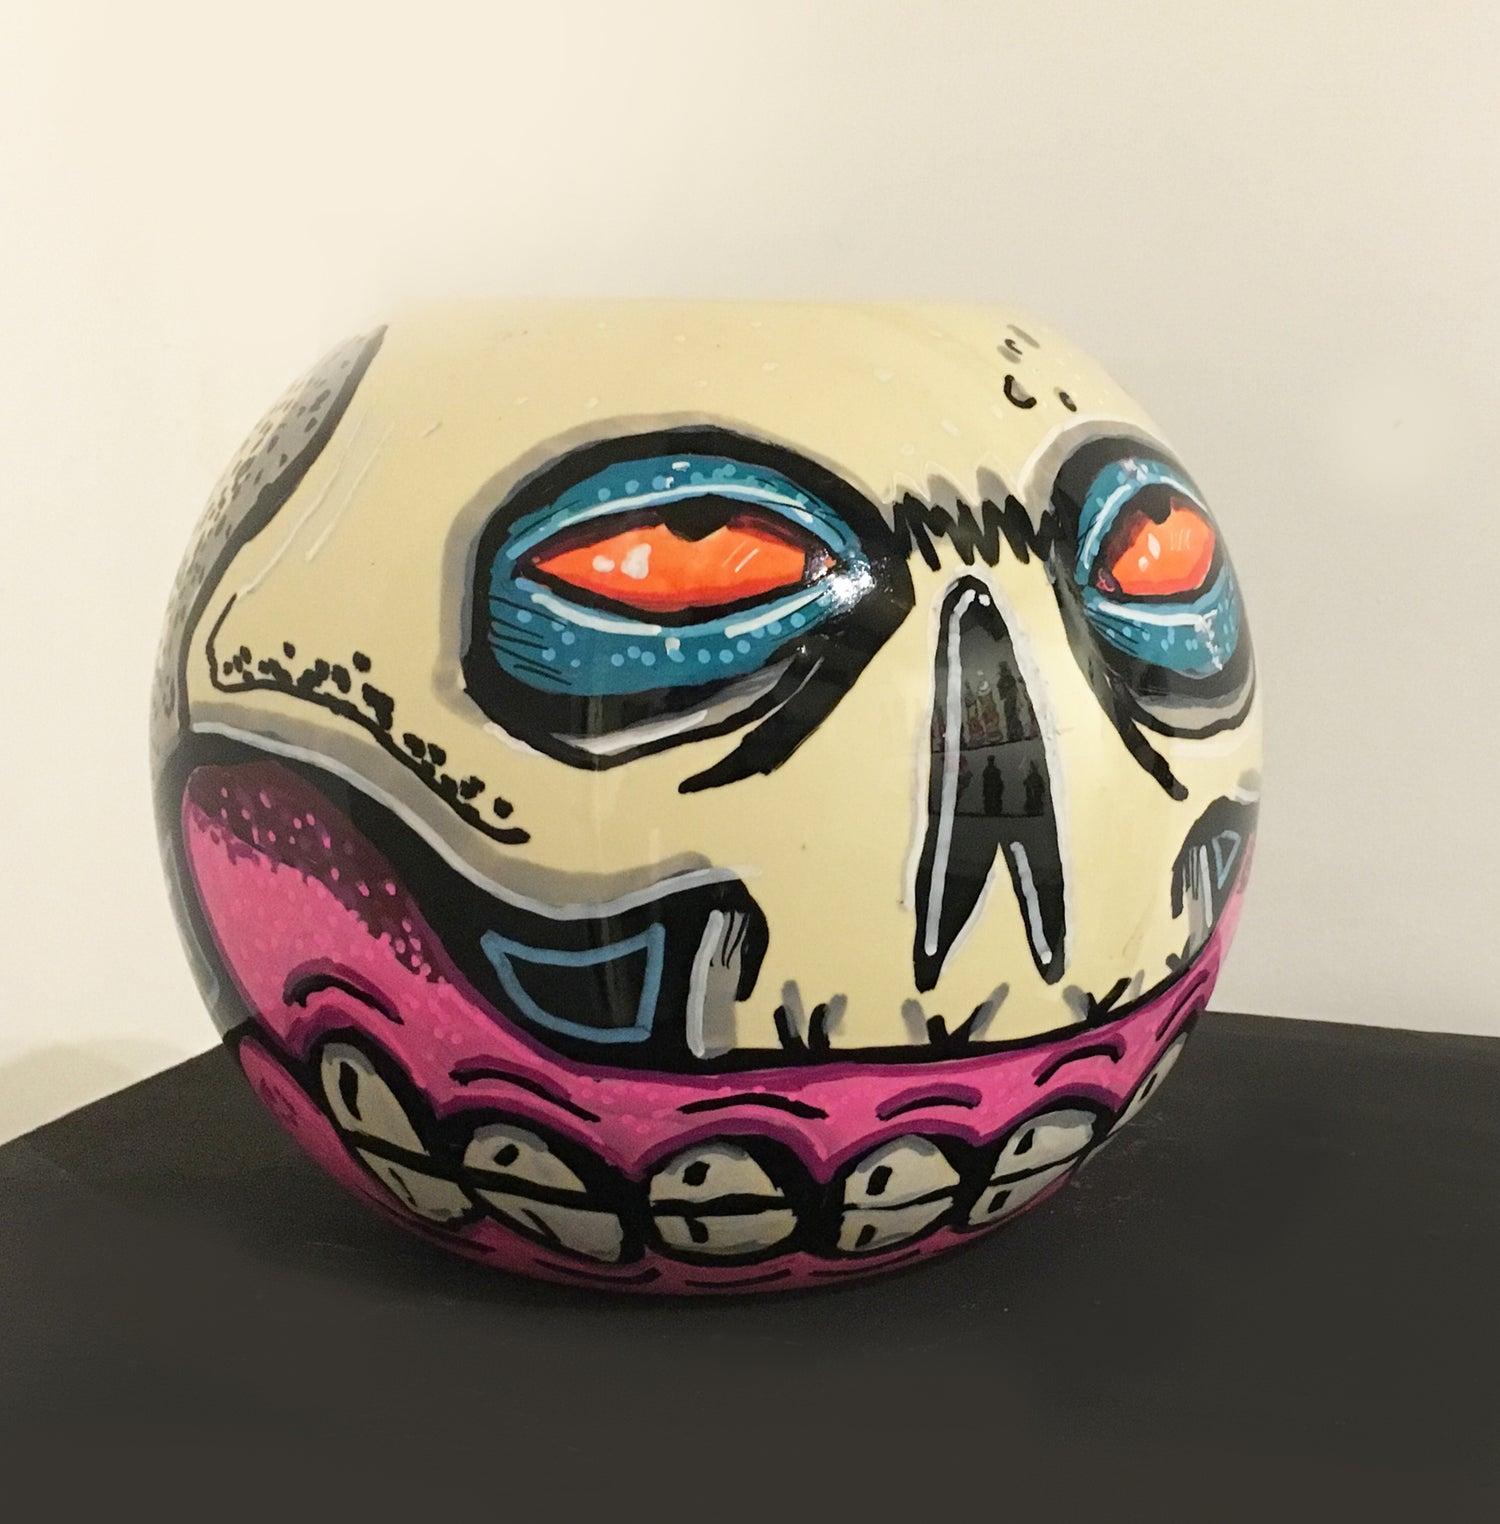 Image of 'Skull Sphere' by Sweet Toof